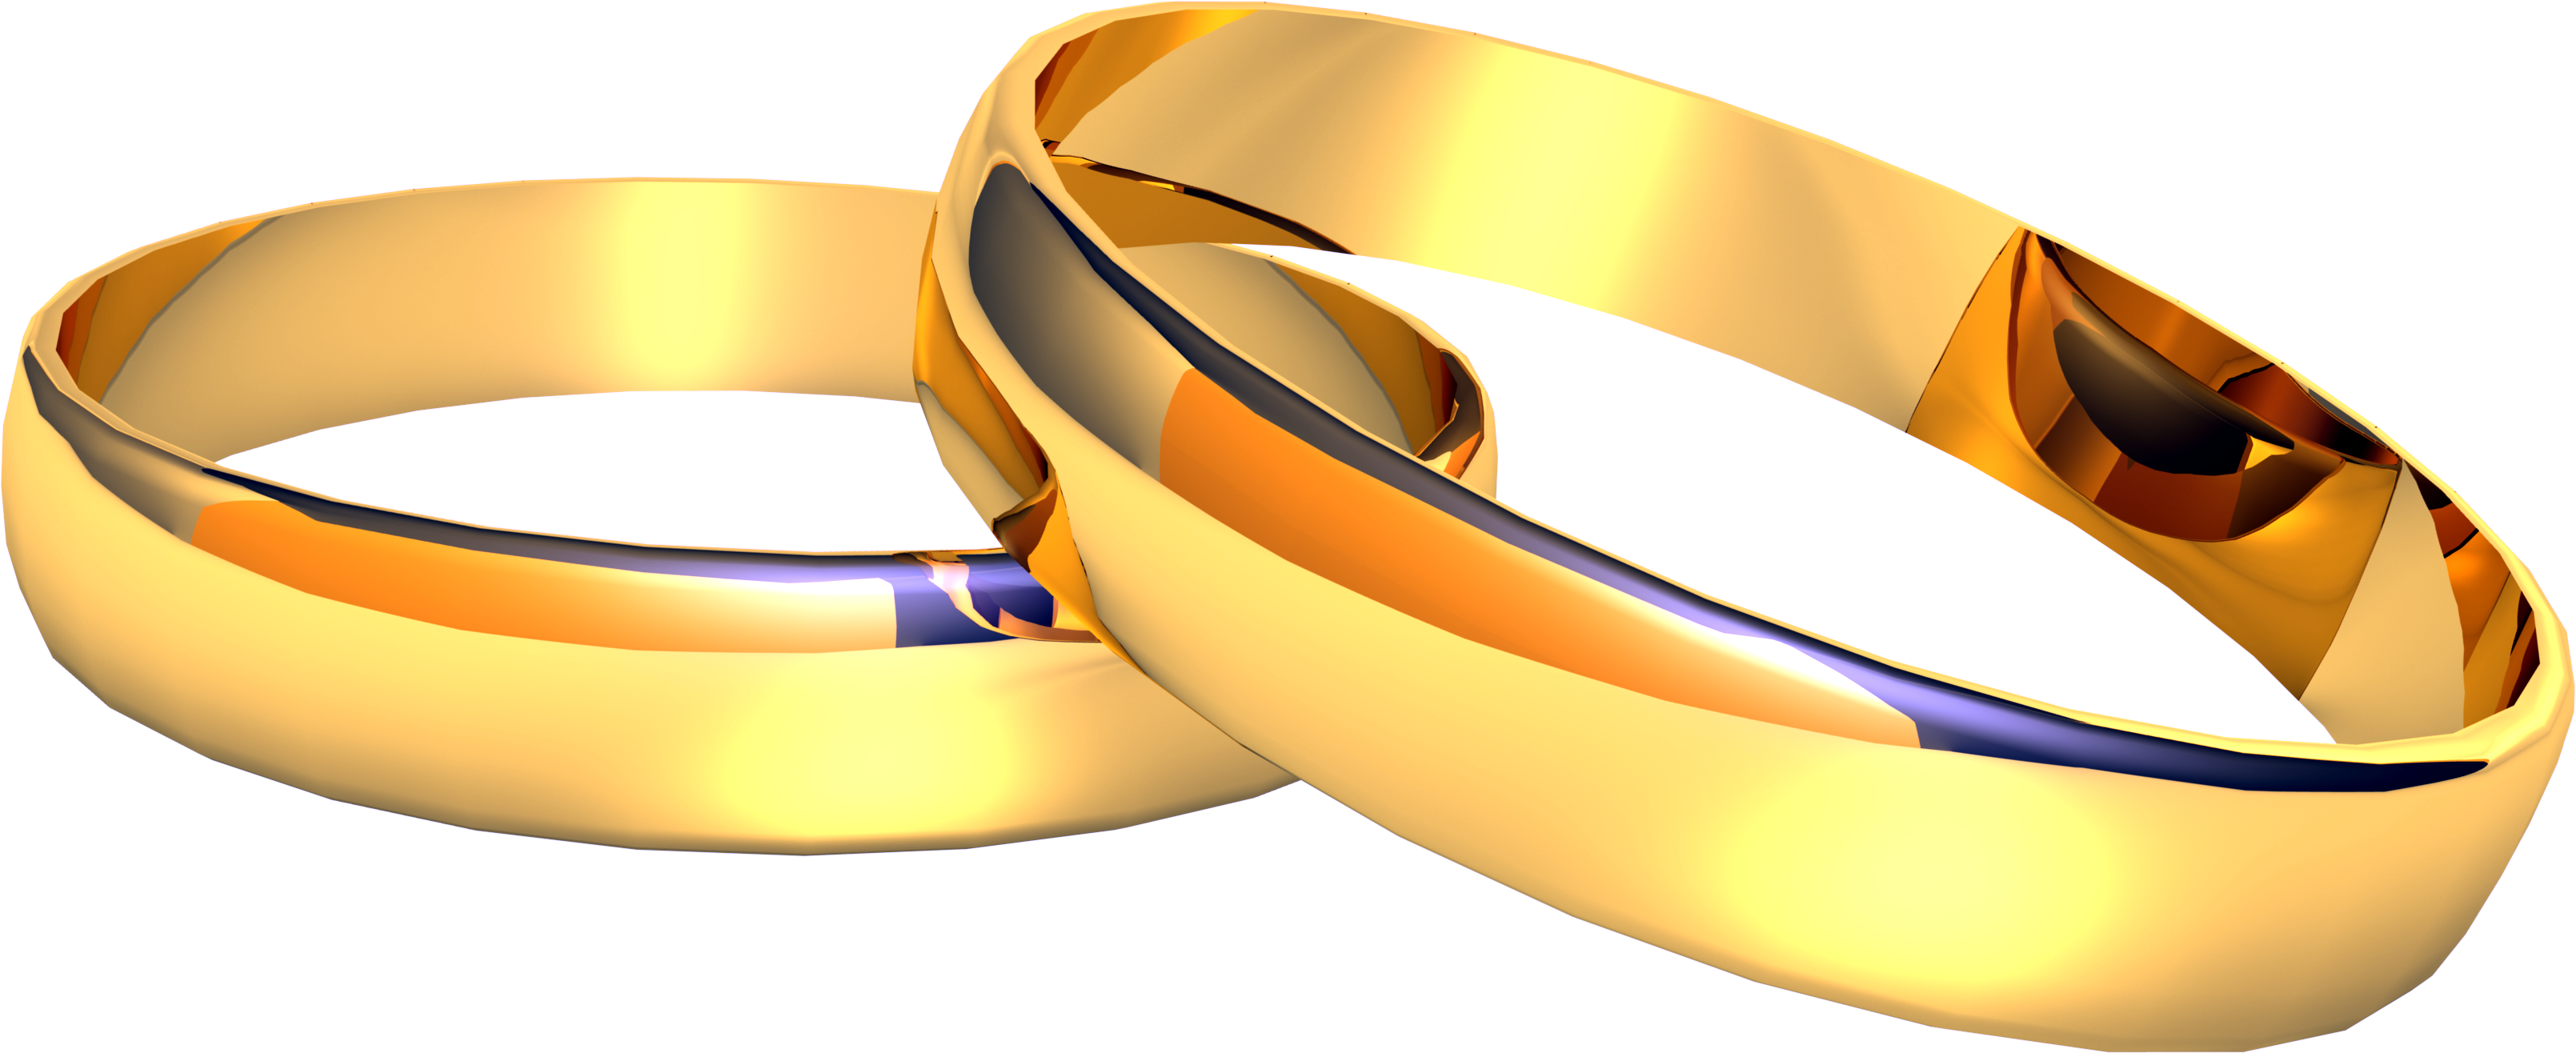 Wedding Png Image PNG Image - Wedding HD PNG